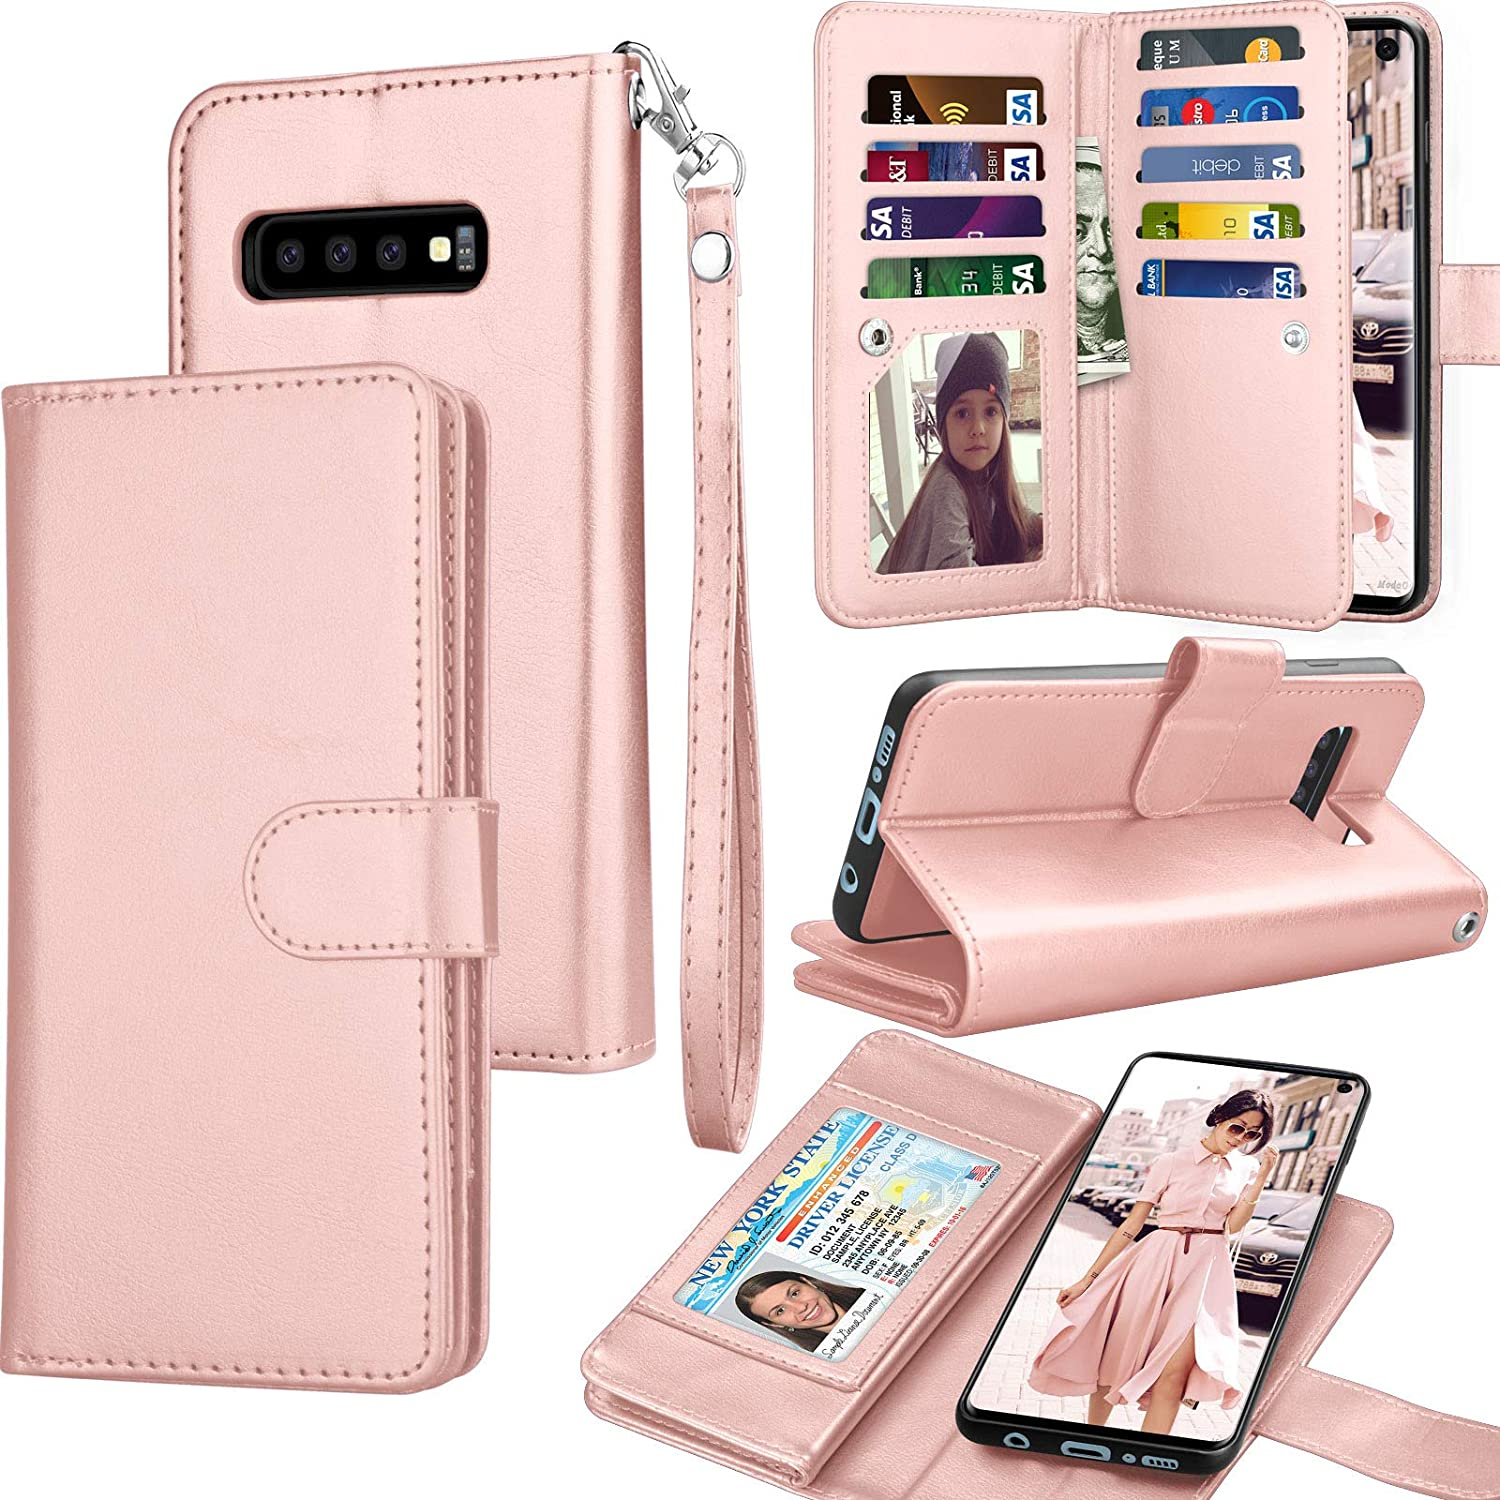 Tekcoo for Galaxy S10 Case, for Galaxy S10 Wallet Case/PU Leather, Luxury Cash Credit Card Slots Holder Carrying Folio Flip Cover [Detachable Magnetic Hard Case] Kickstand for Samsung S10 -Rose Gold